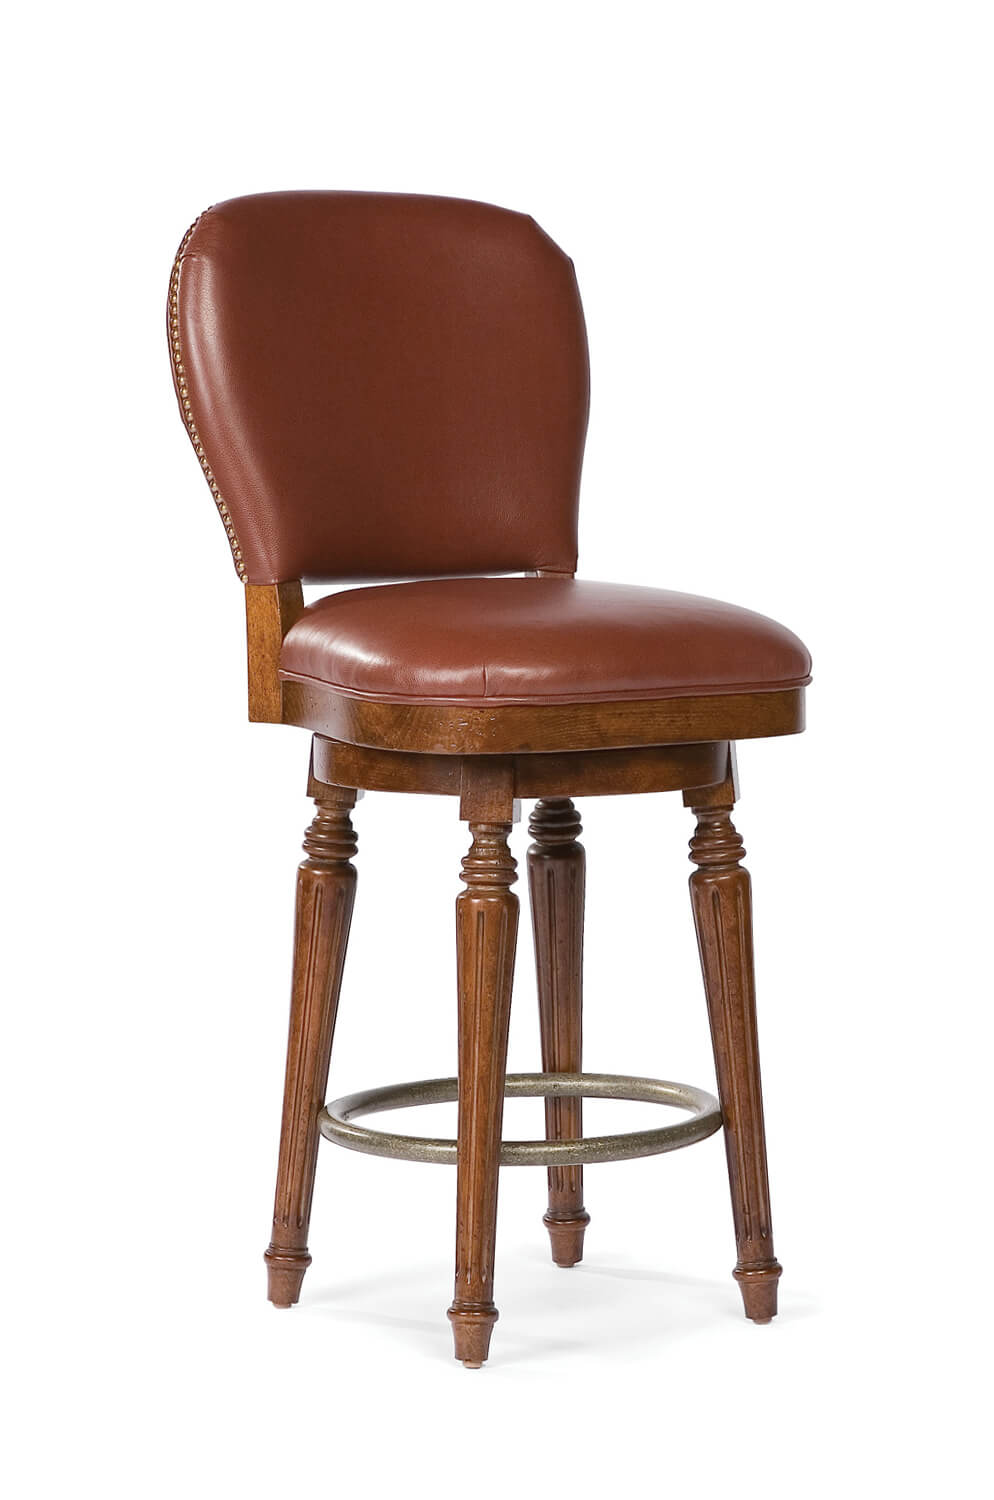 Quincy Comfortable Upholstered Wood Swivel Stool Free